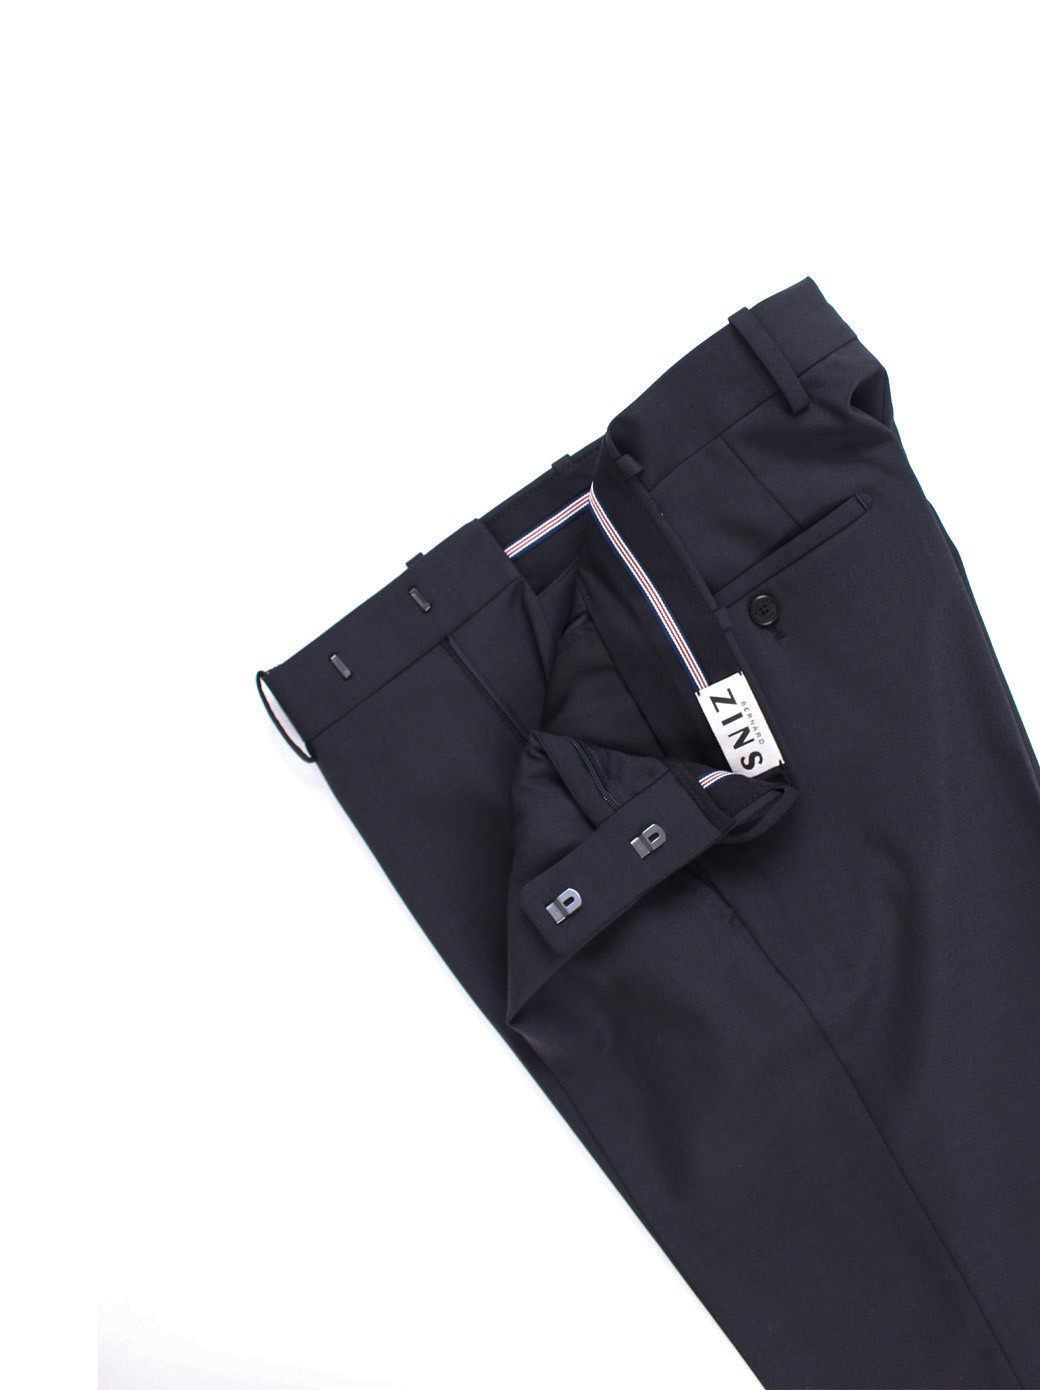 BZV2 FITTED PANTS - ALL SEASONS TRAVEL WEAR 7456